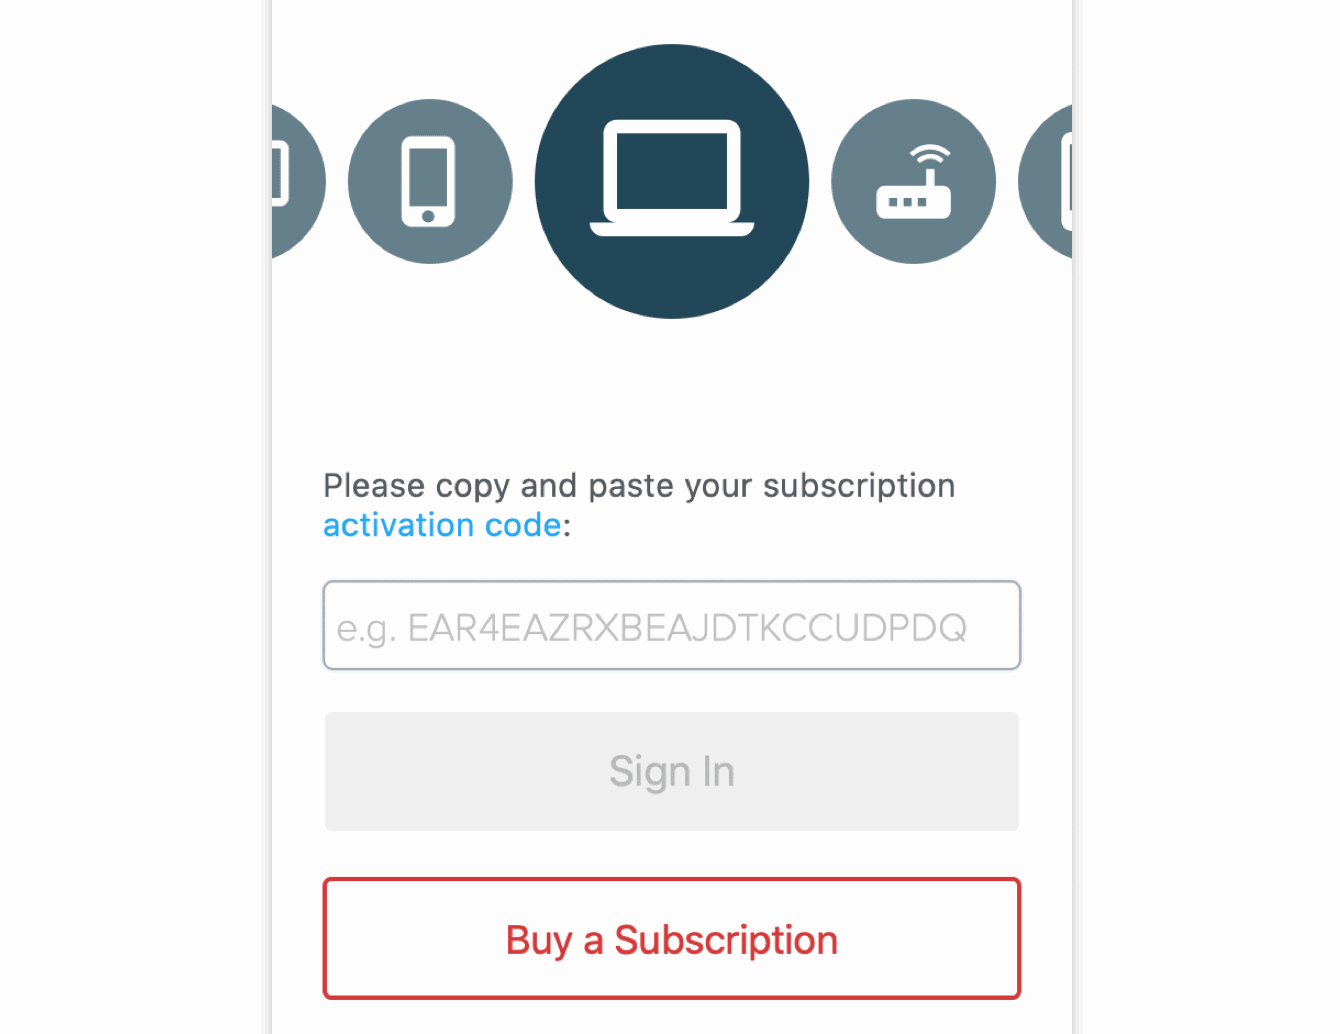 Paste your activation code to sign in.